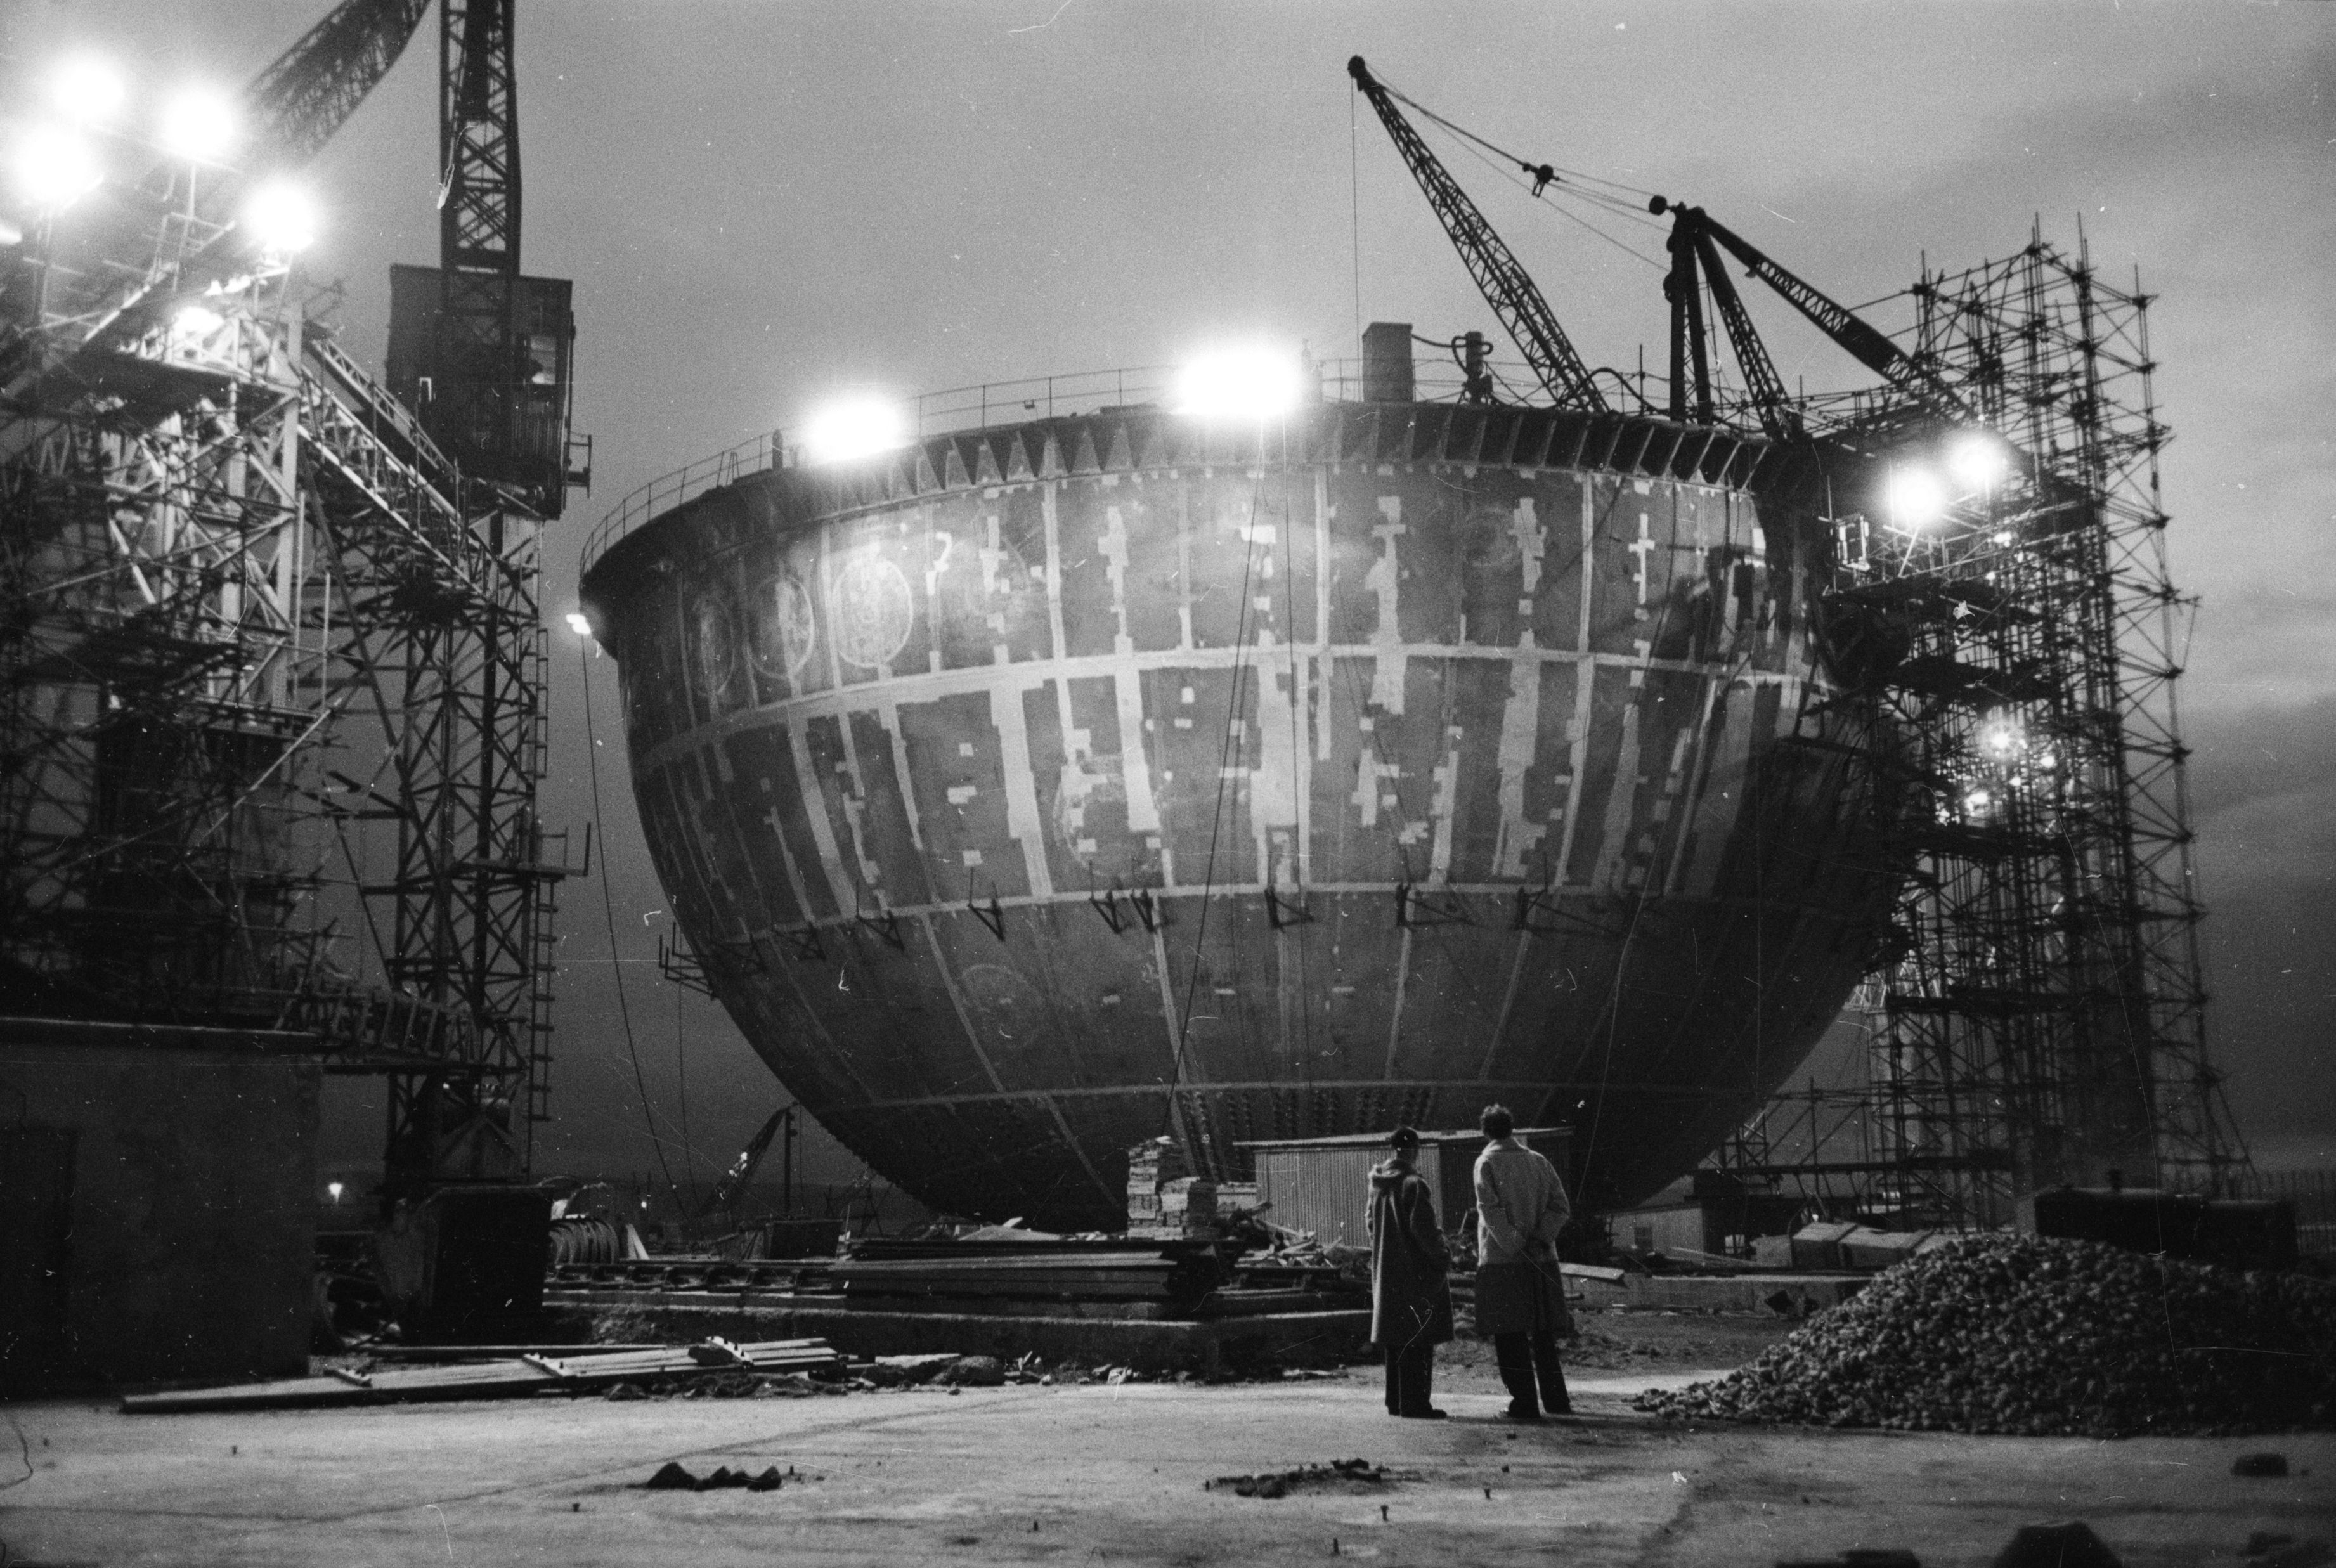 The bottom half of the Dounreay reactor, a steel ball 135-ft wide, during construction in July 1956 (Charles Hewitt/Picture Post/Getty Images)